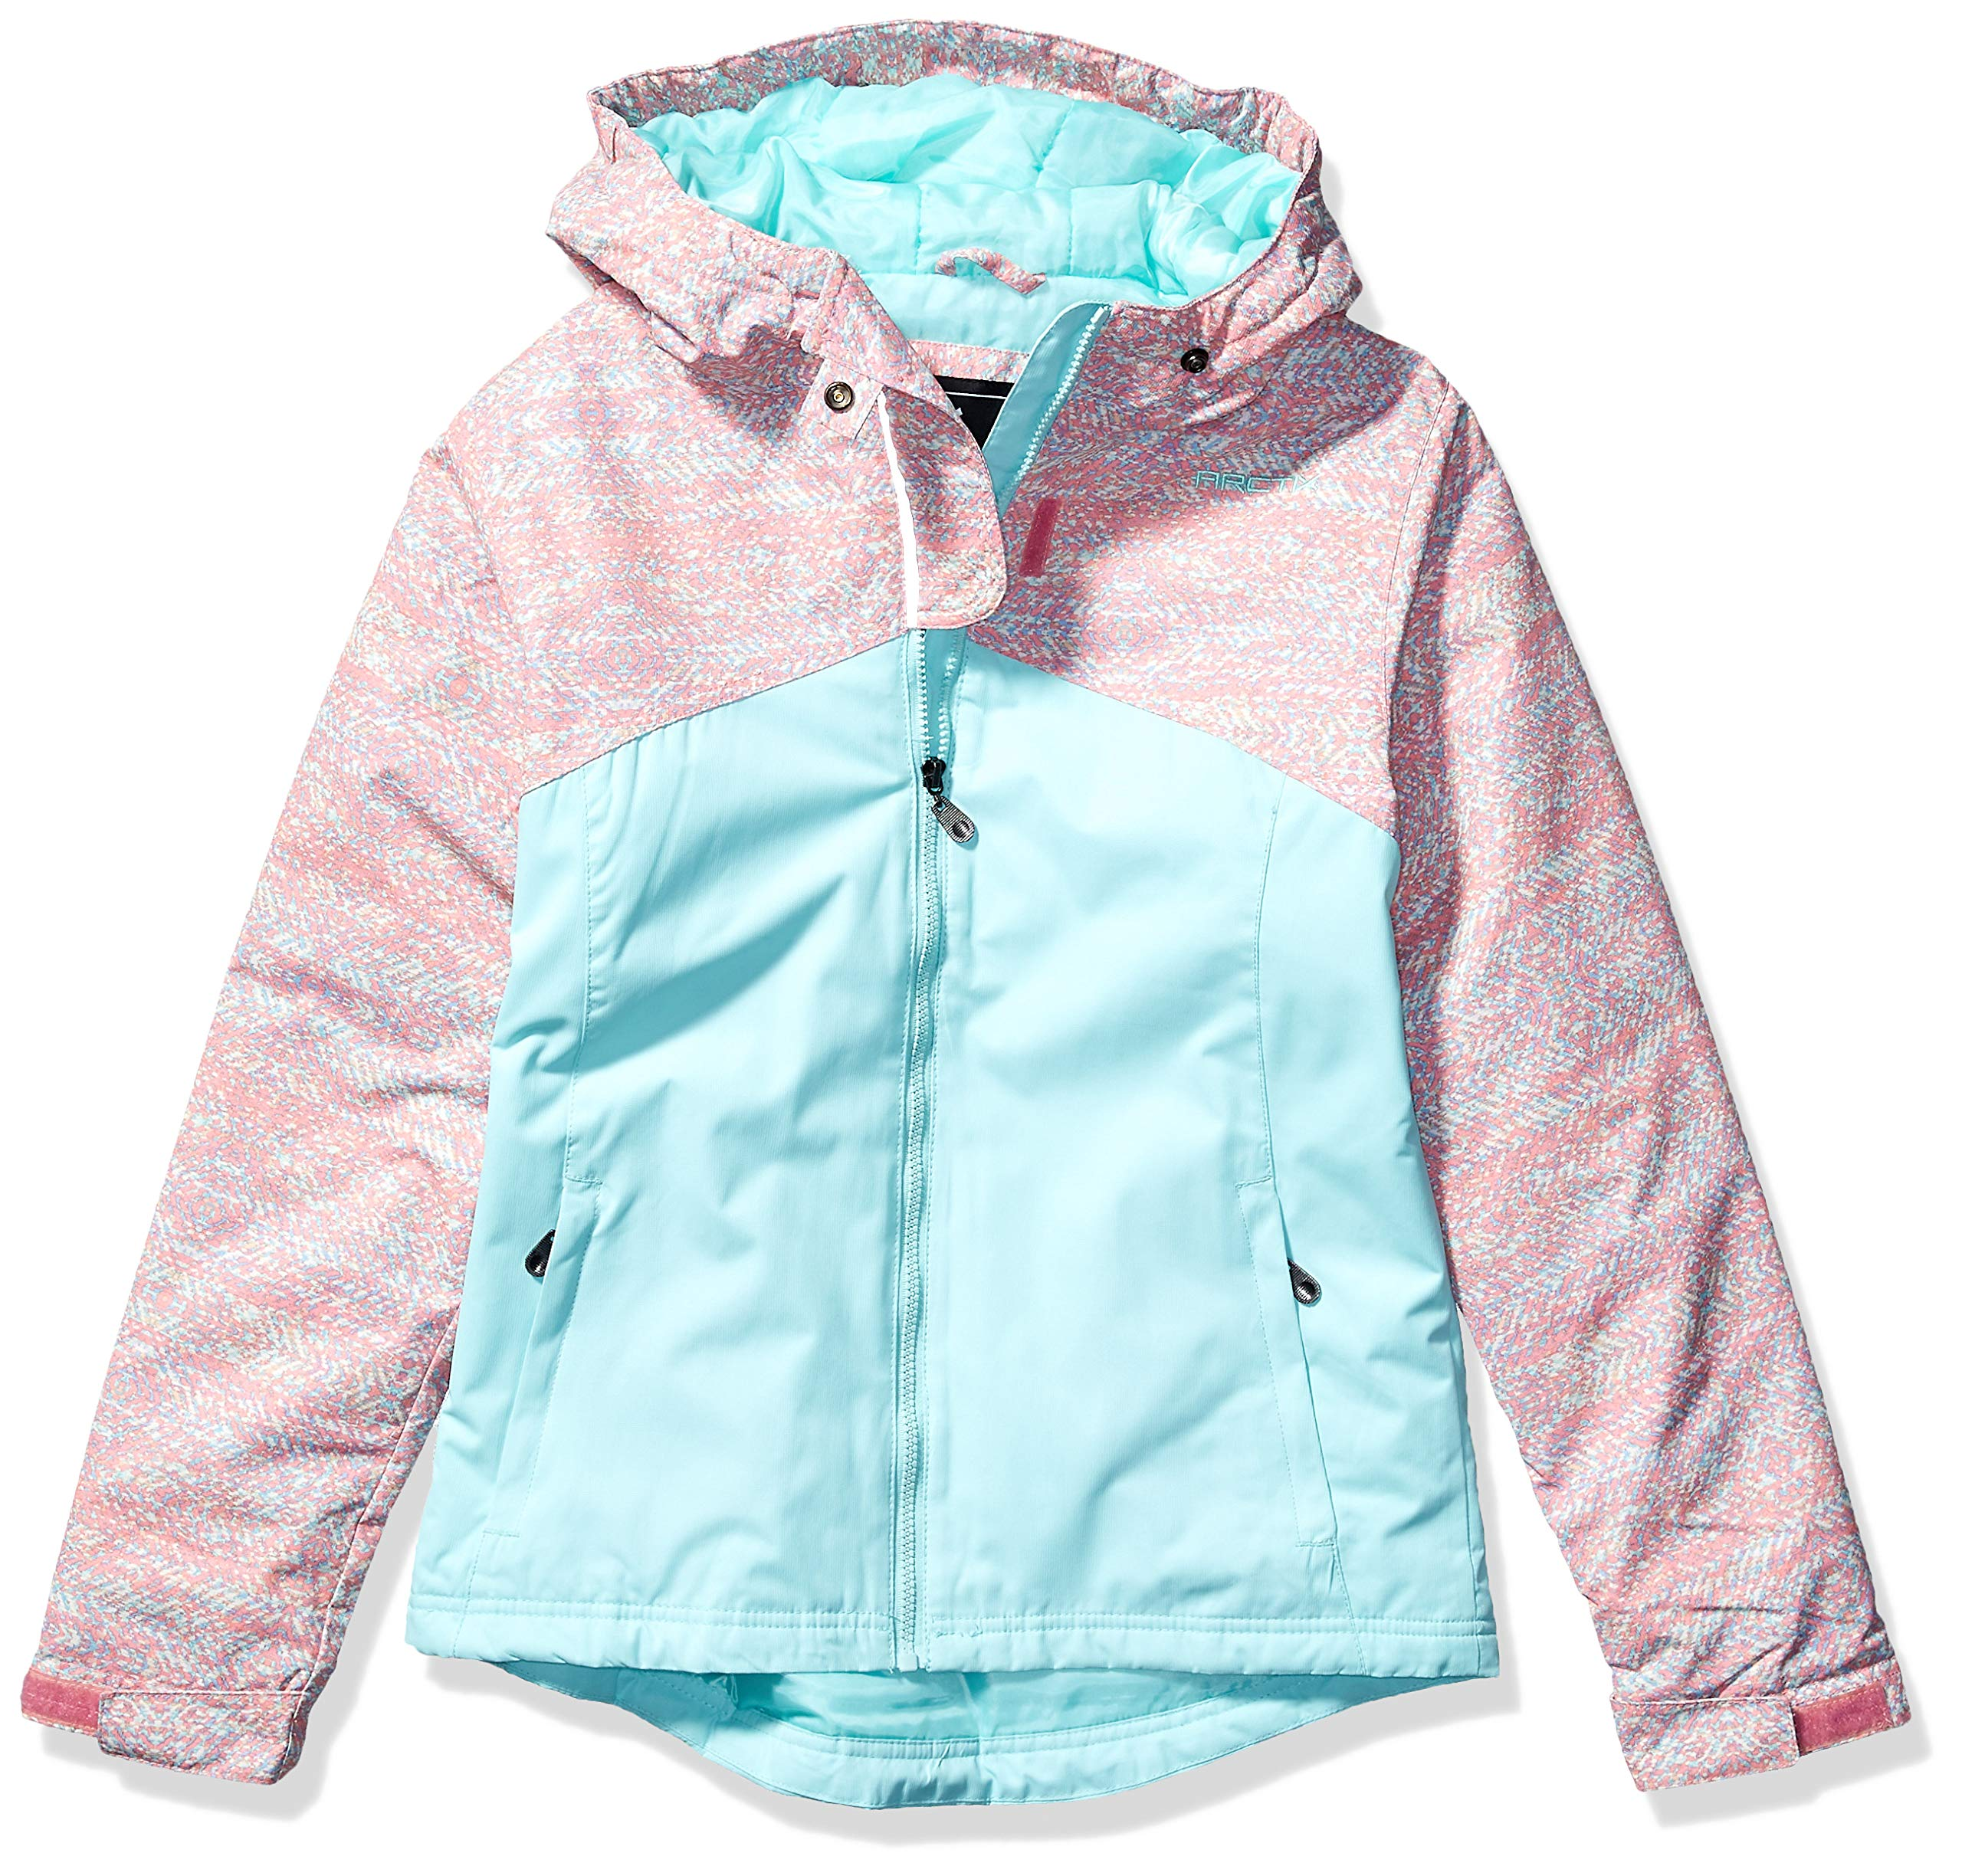 Arctix Girls Suncatcher Insulated Winter Jacket, Aztec Opal, Medium by Arctix